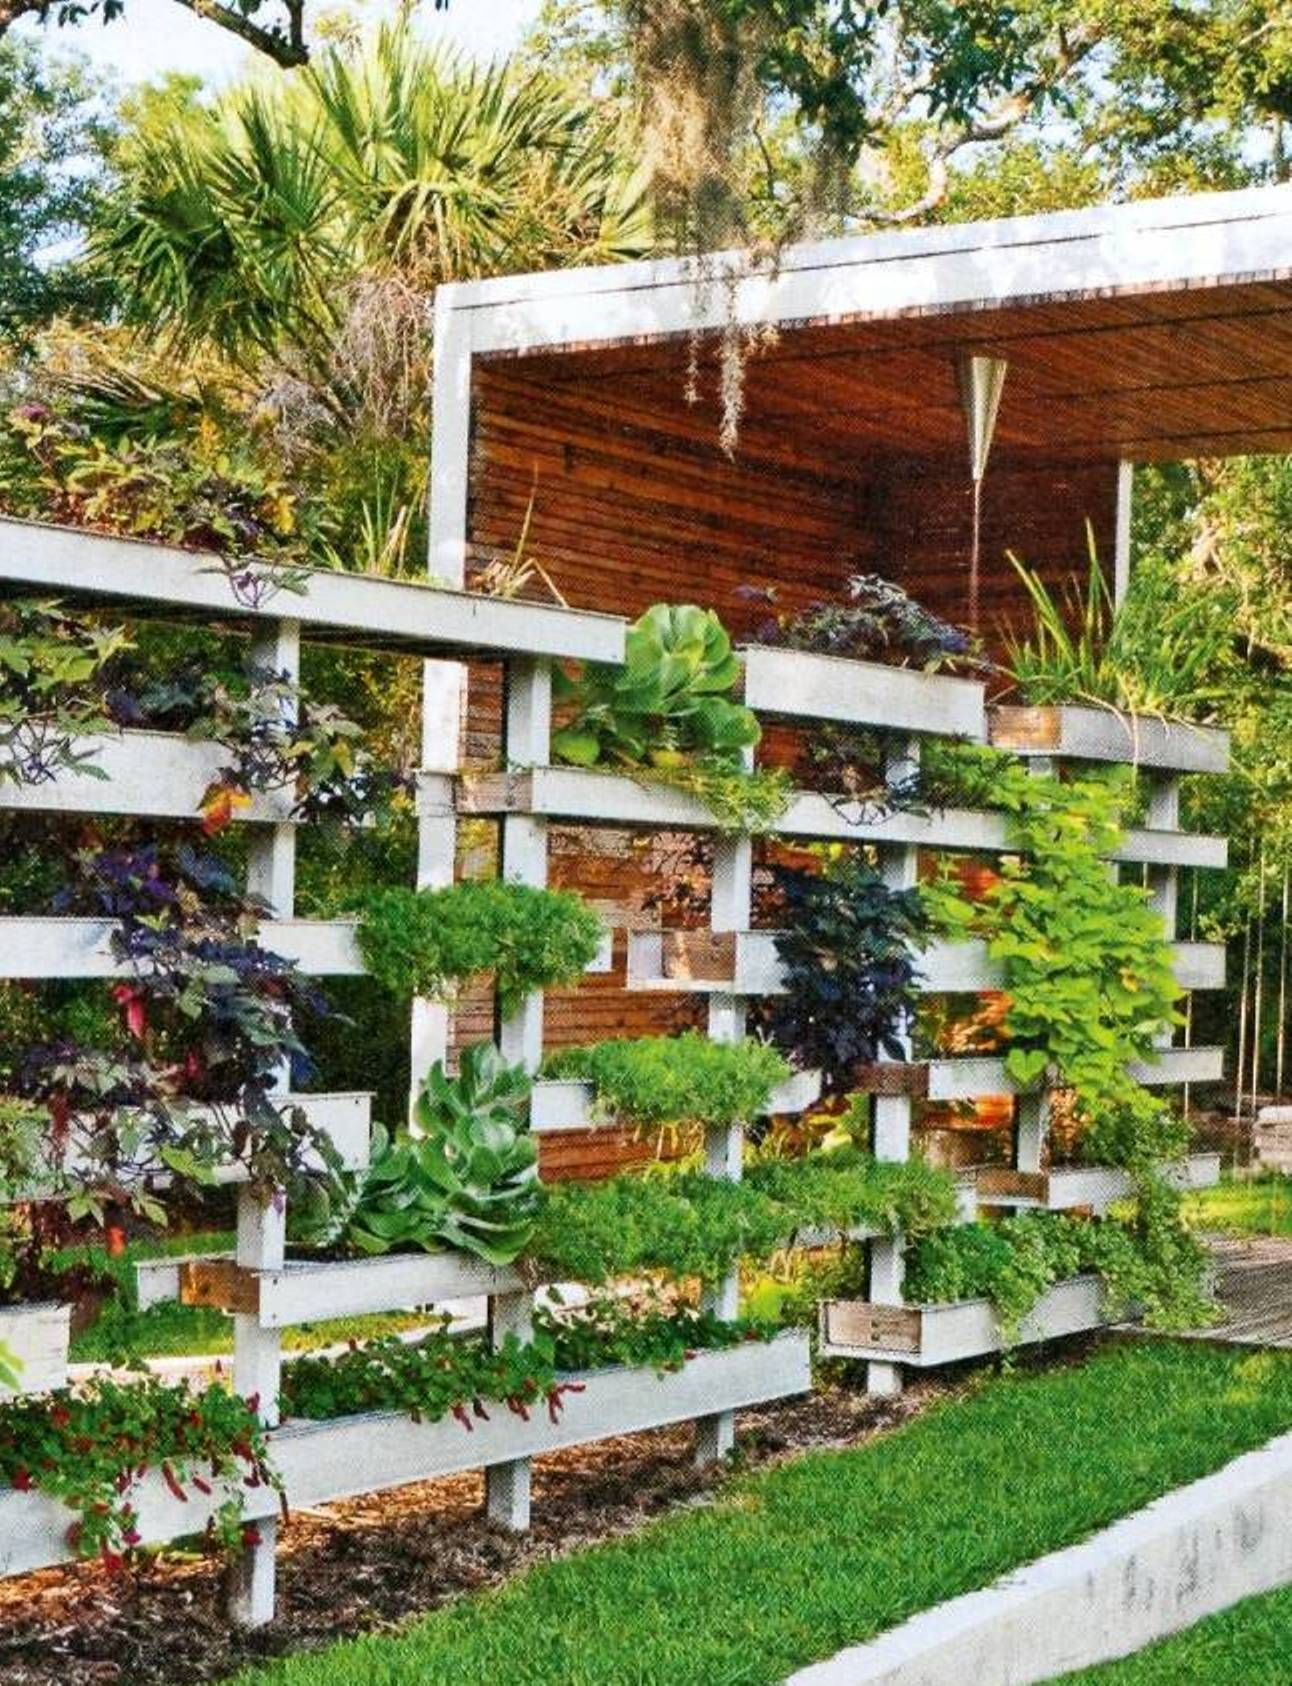 Small Space Garden Ideas Wonder If You Could Set This Up With A